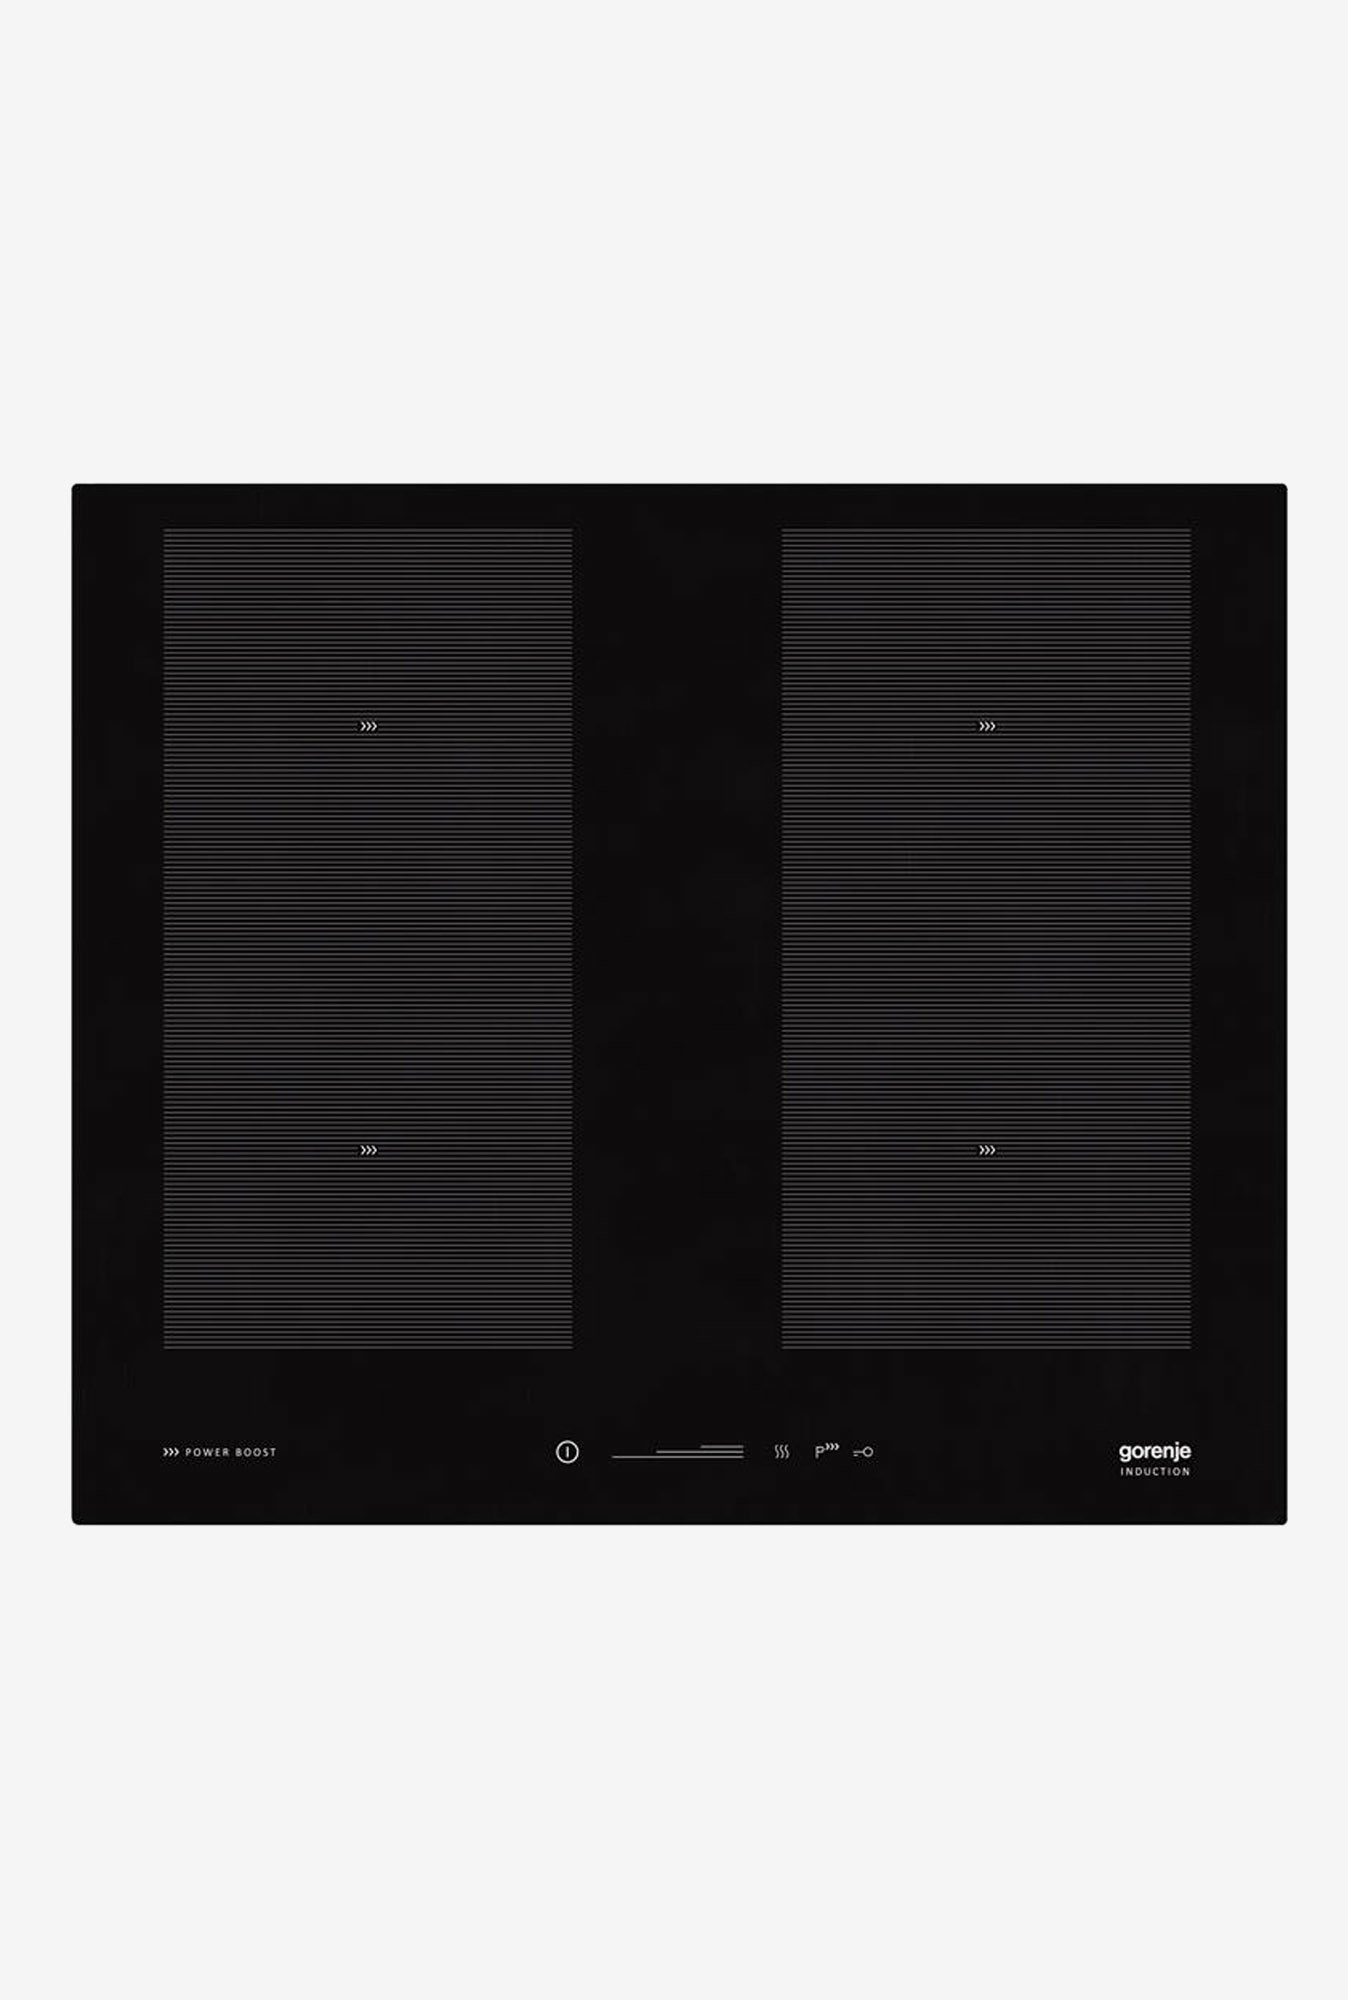 Gorenje 60 cm IS656SC Induction Hob Black